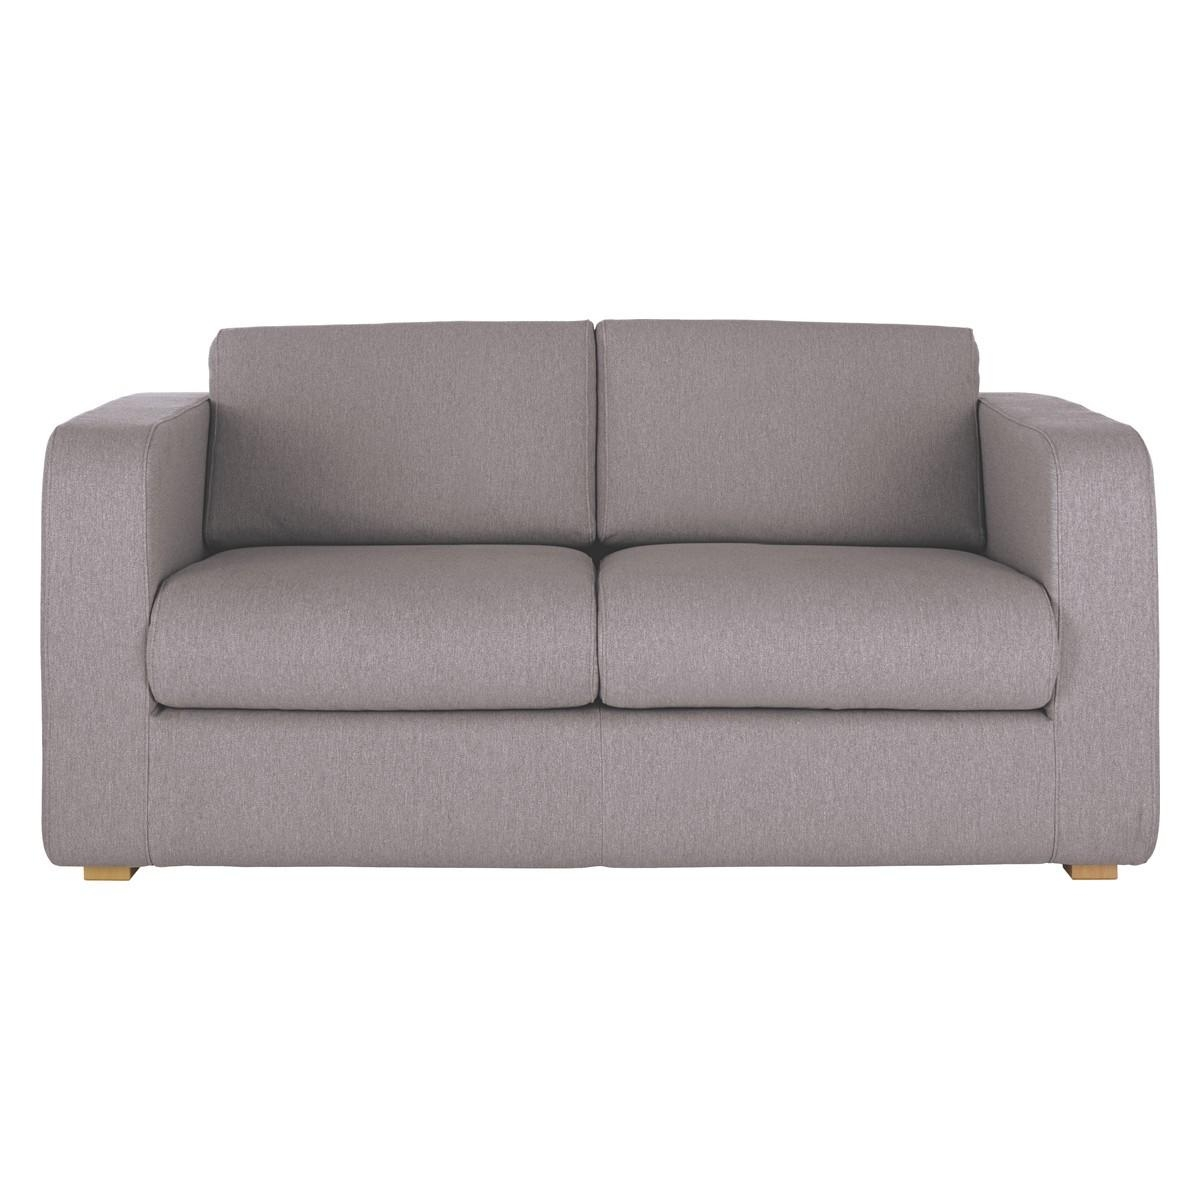 Sofas Center : Small Seaterfa Uk Codeminimalist Net With Regard To Small Grey Sofas (Image 20 of 20)